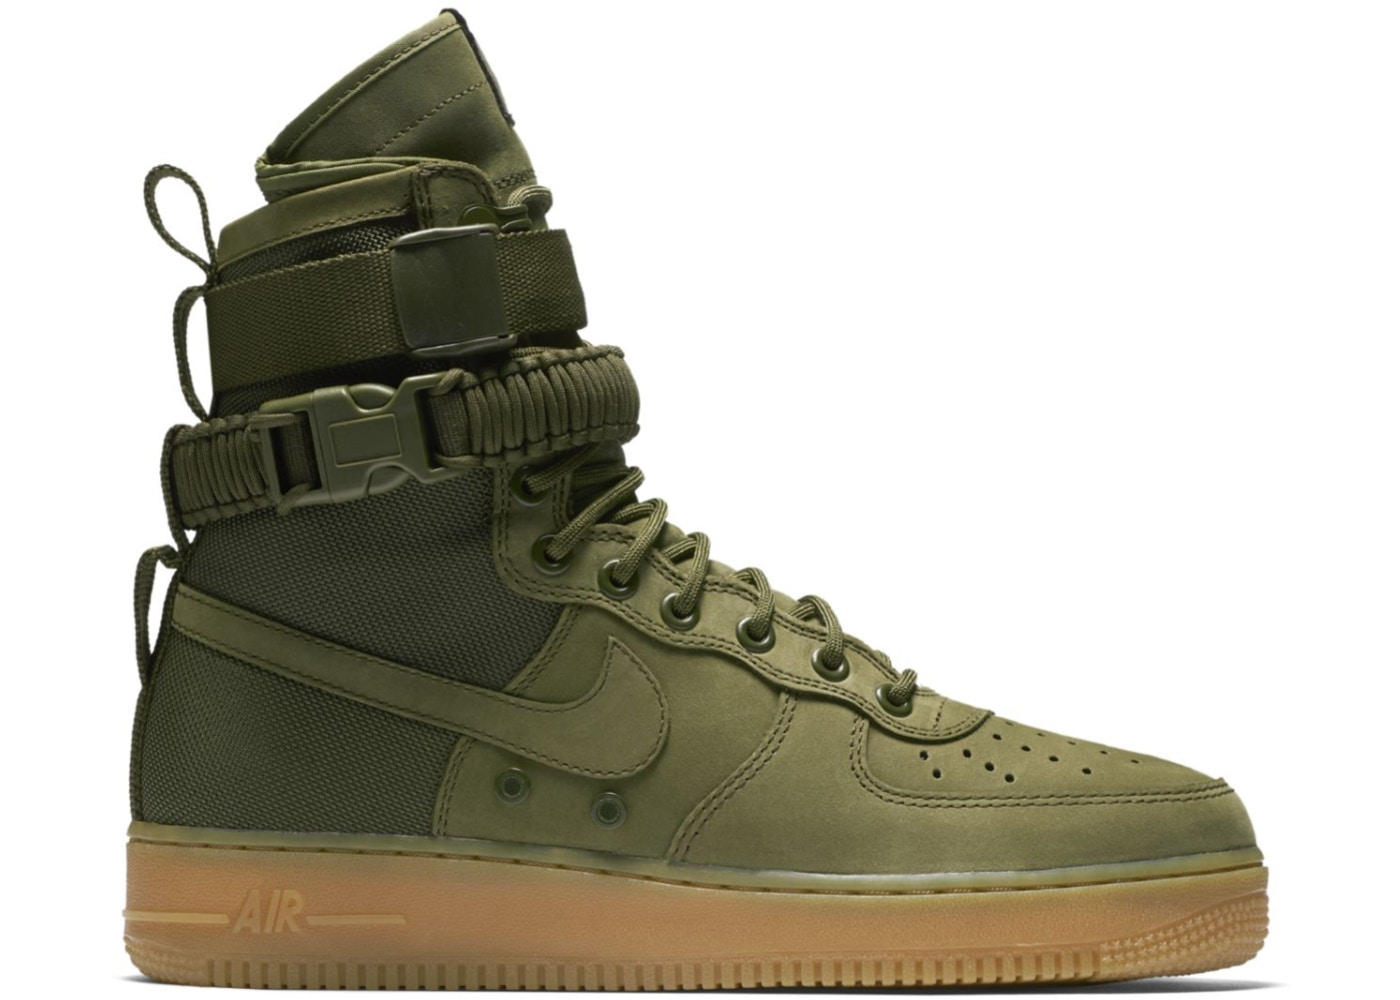 483605ae94f30 nike air force 1 olive